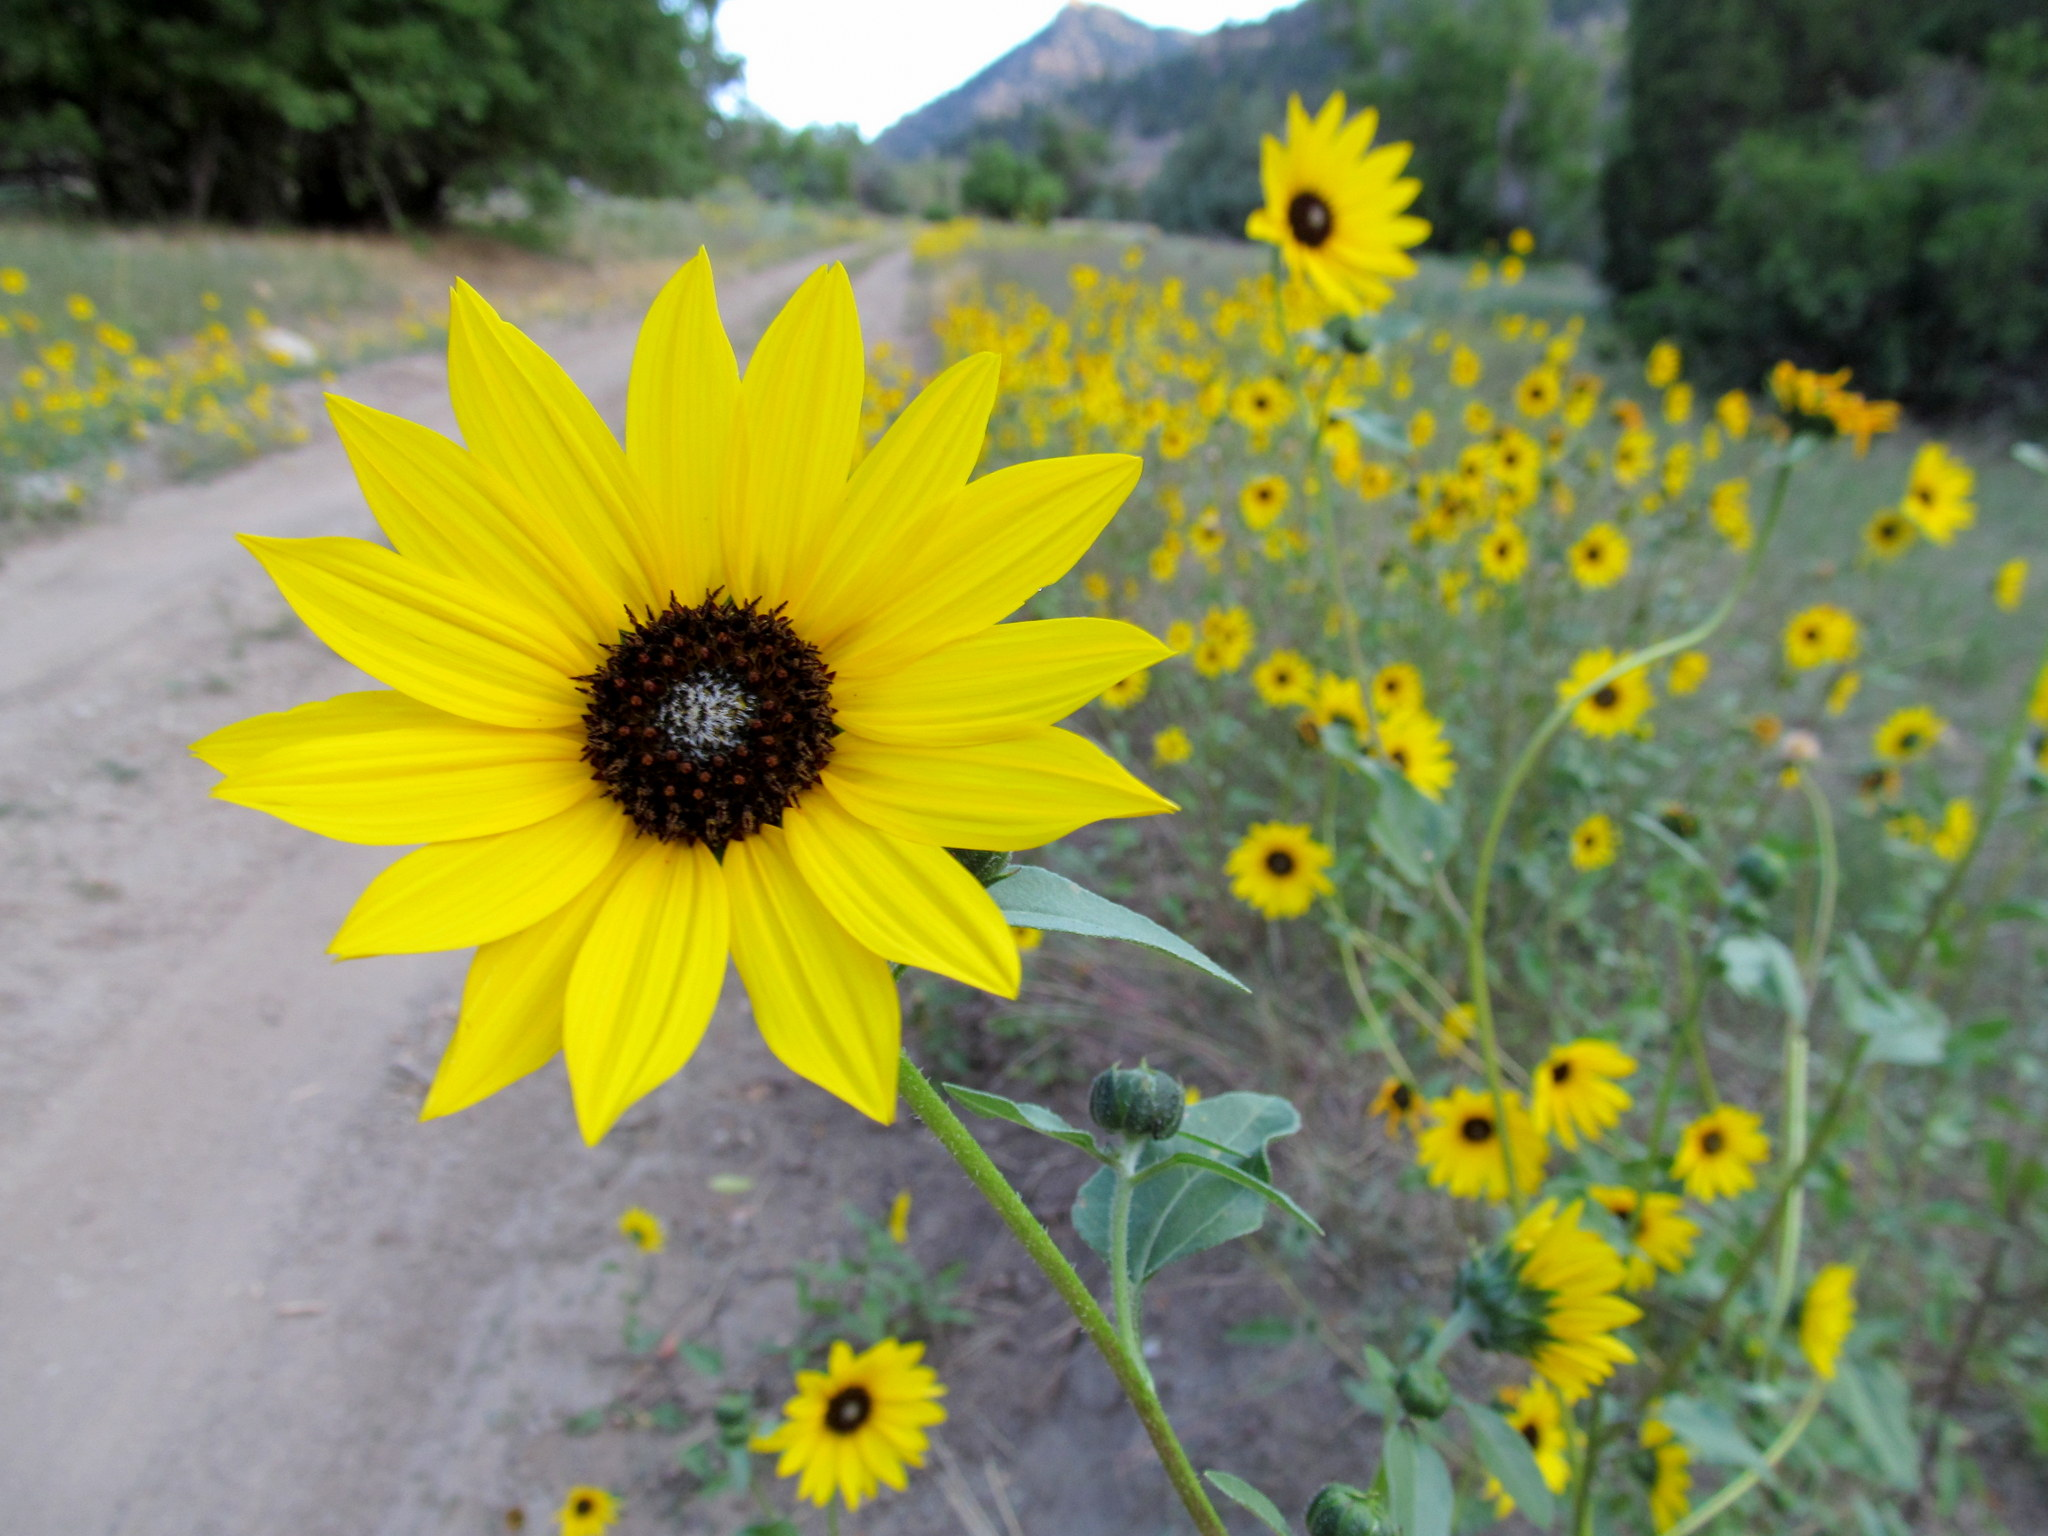 Photo: Sunflowers lining the road